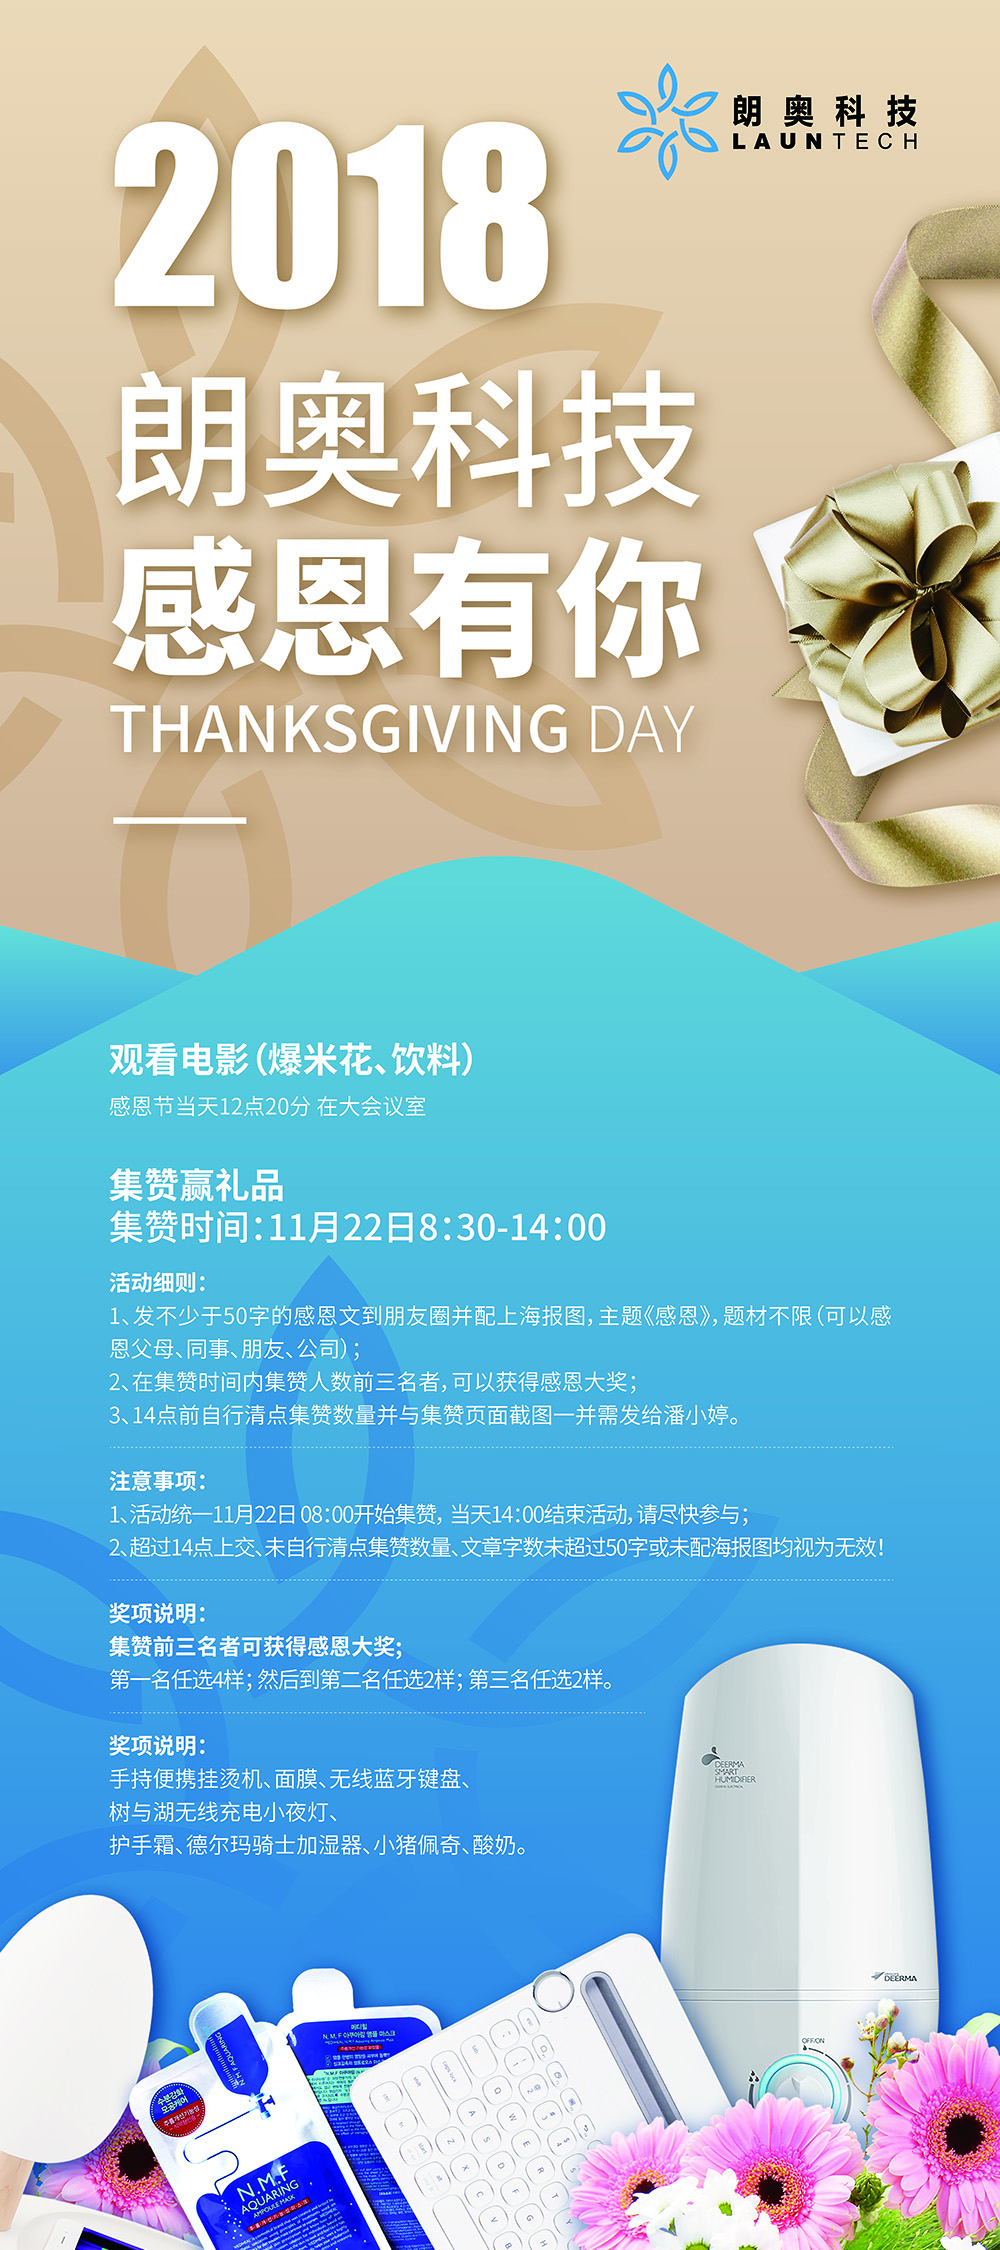 Thanksgiving Day  2018, Laun Technology, thanks to you